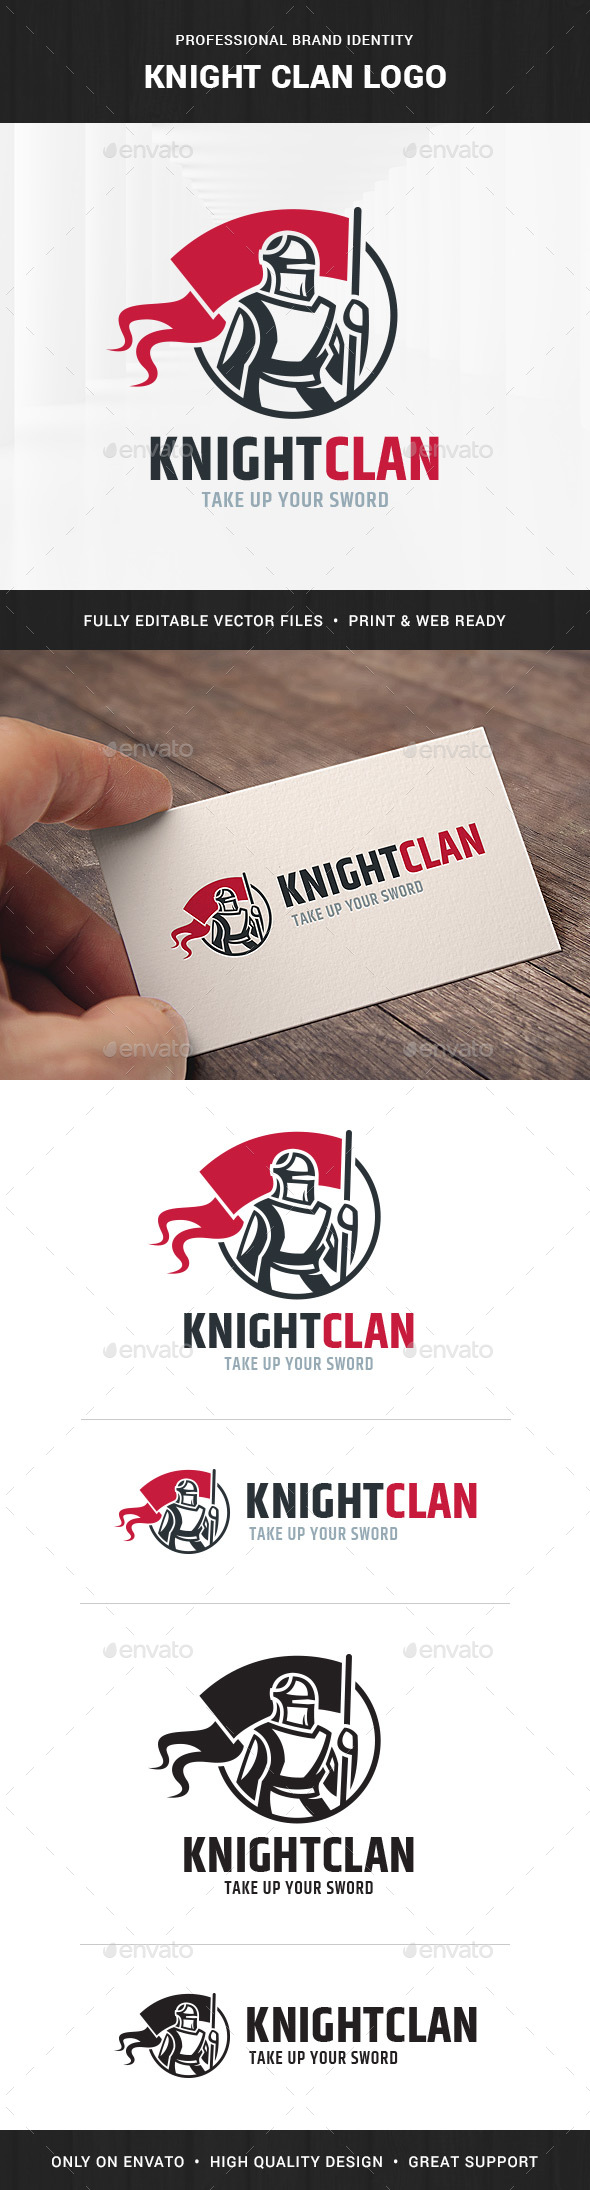 Knight Clan Logo Template - Humans Logo Templates